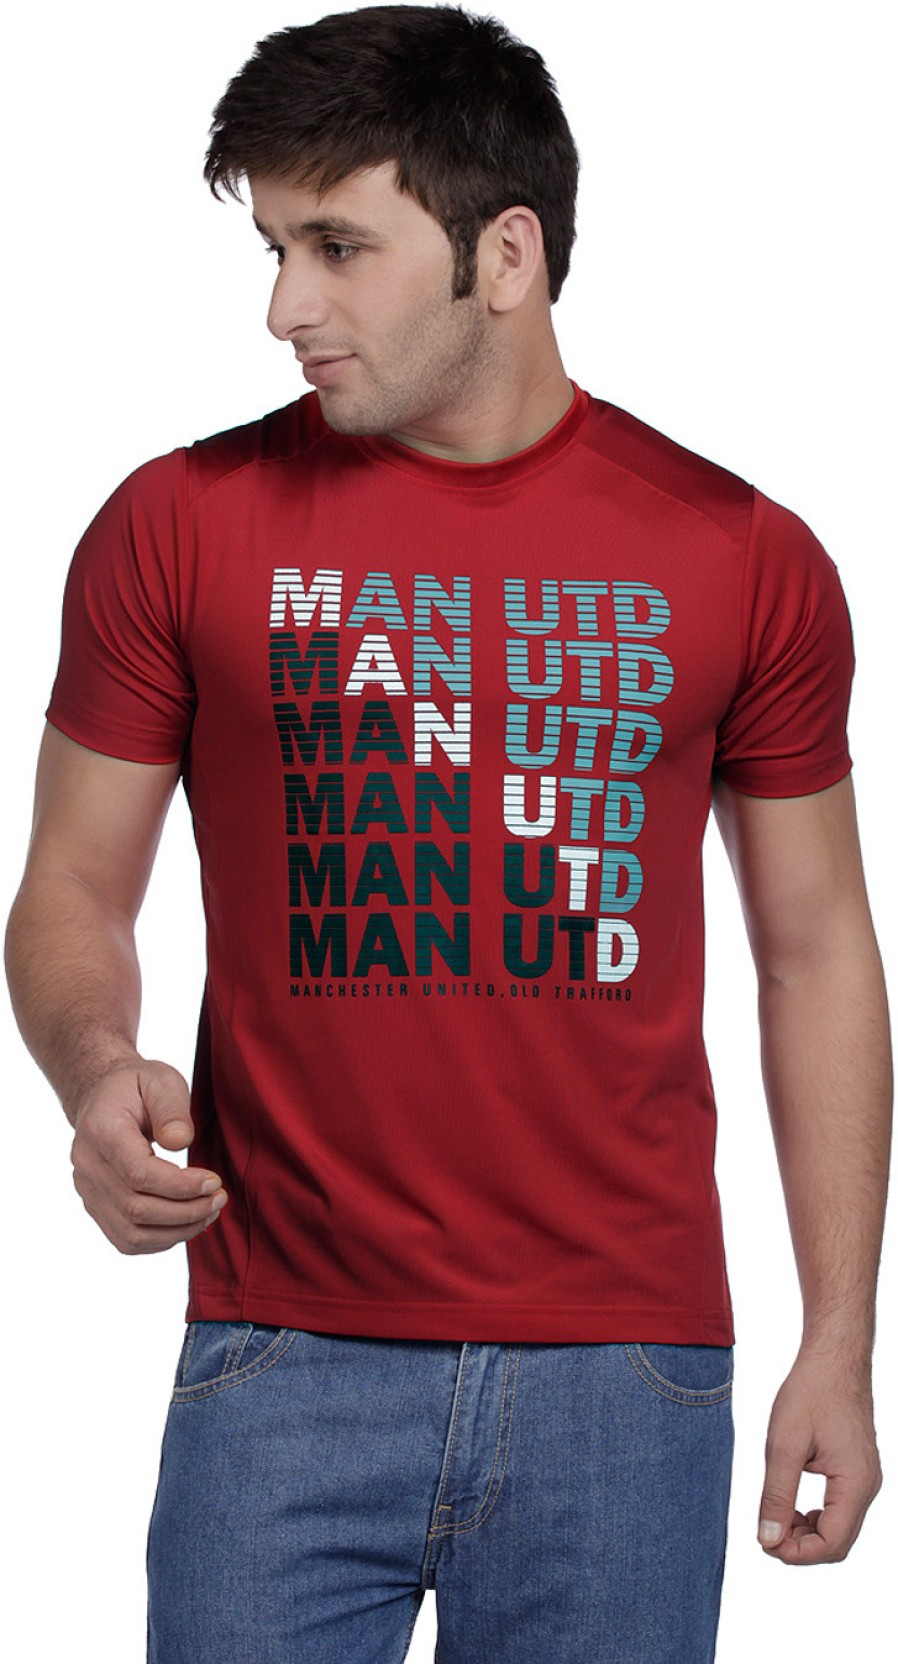 new product 5e8d2 7a507 Manchester United T Shirts India Price – EDGE Engineering ...